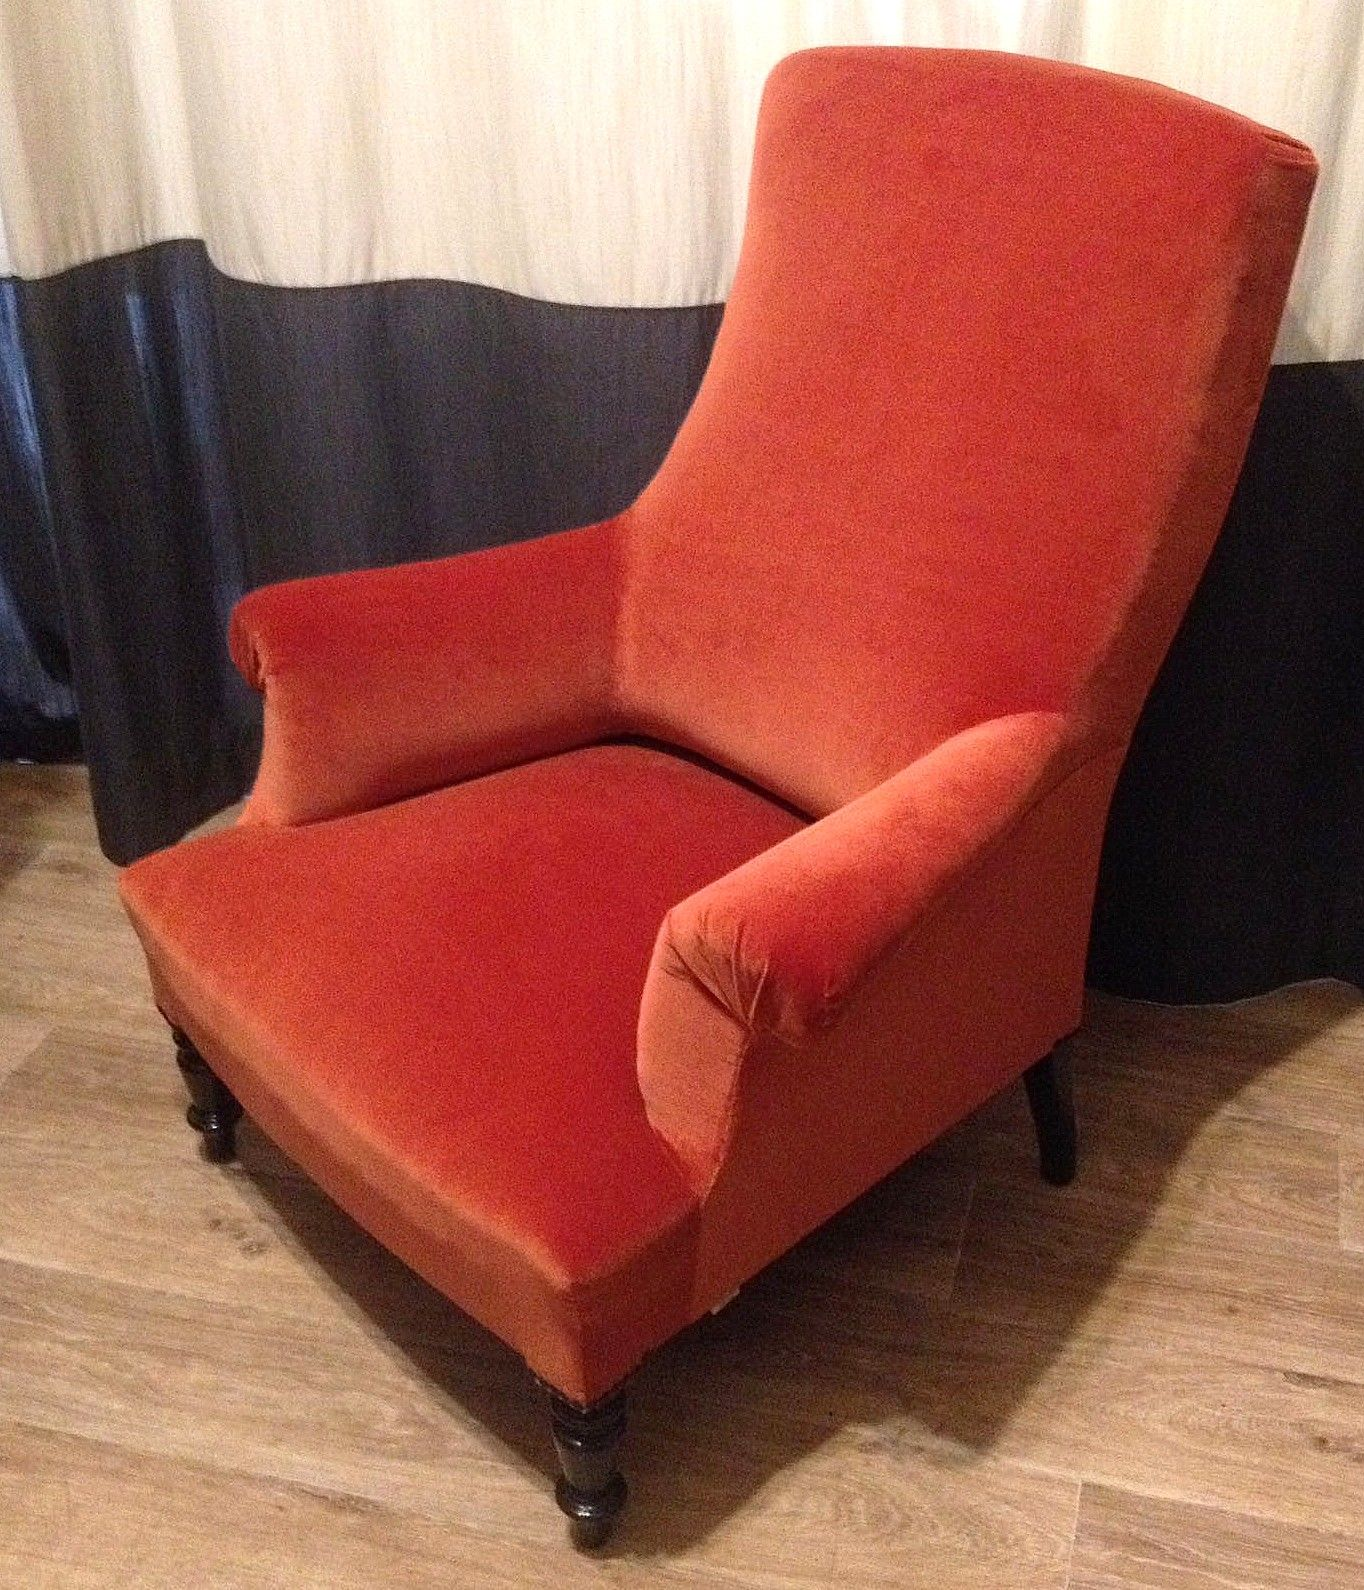 Fauteuil anglais velours Leli¨vre Our creations